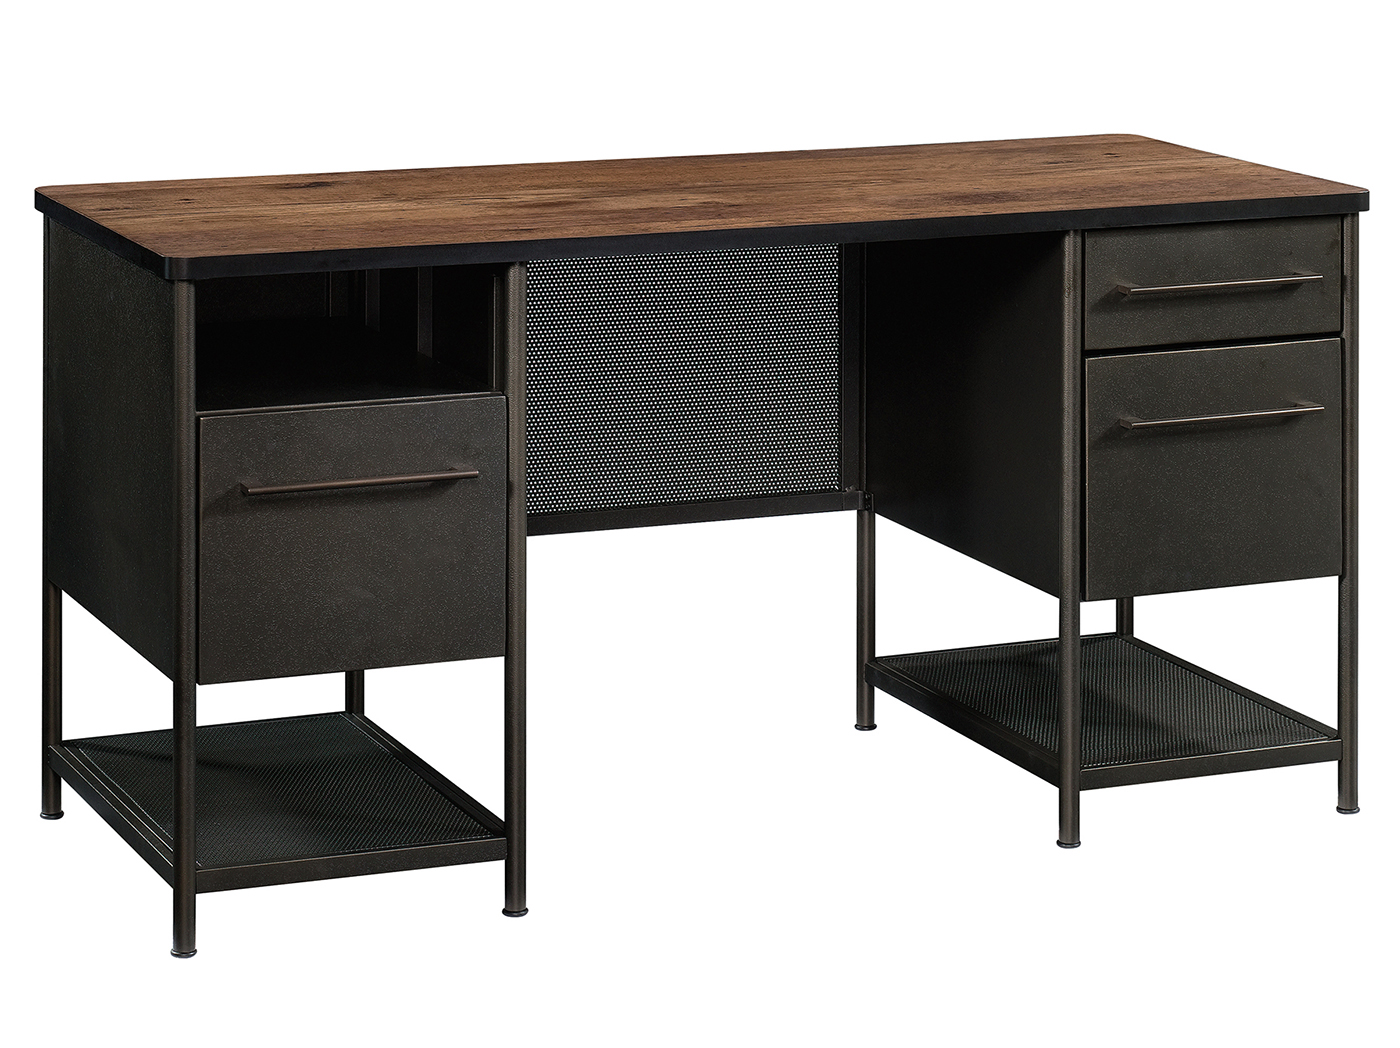 Boulevard Cafe Executive Desk